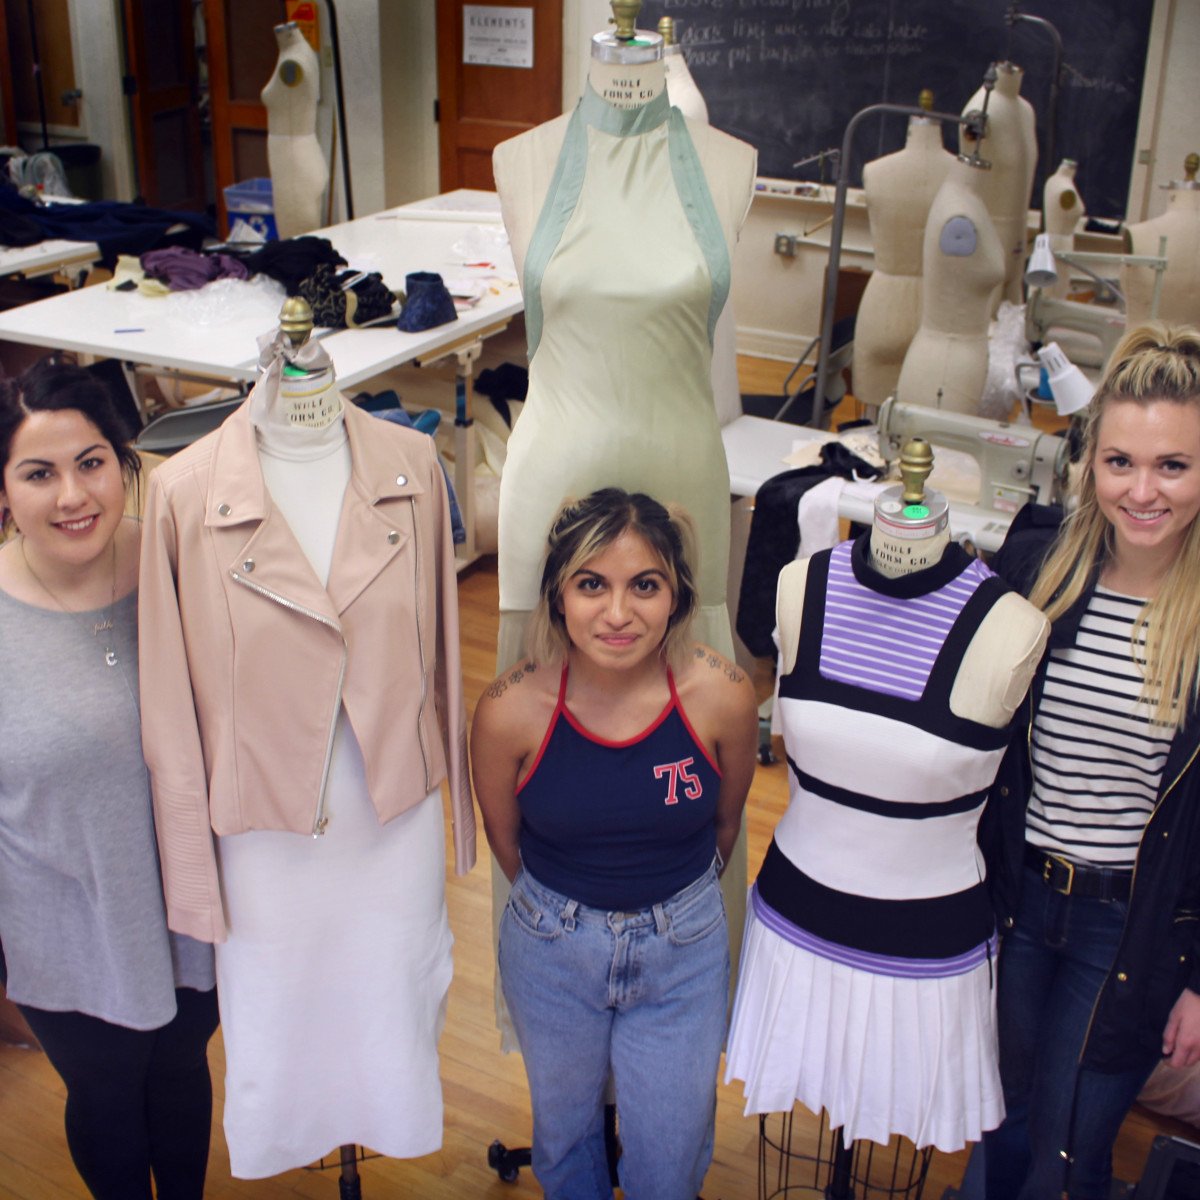 University of Texas fashion show Elements preview class April 2016 Carolina Ramos Victoria Espinoza Emily Noel